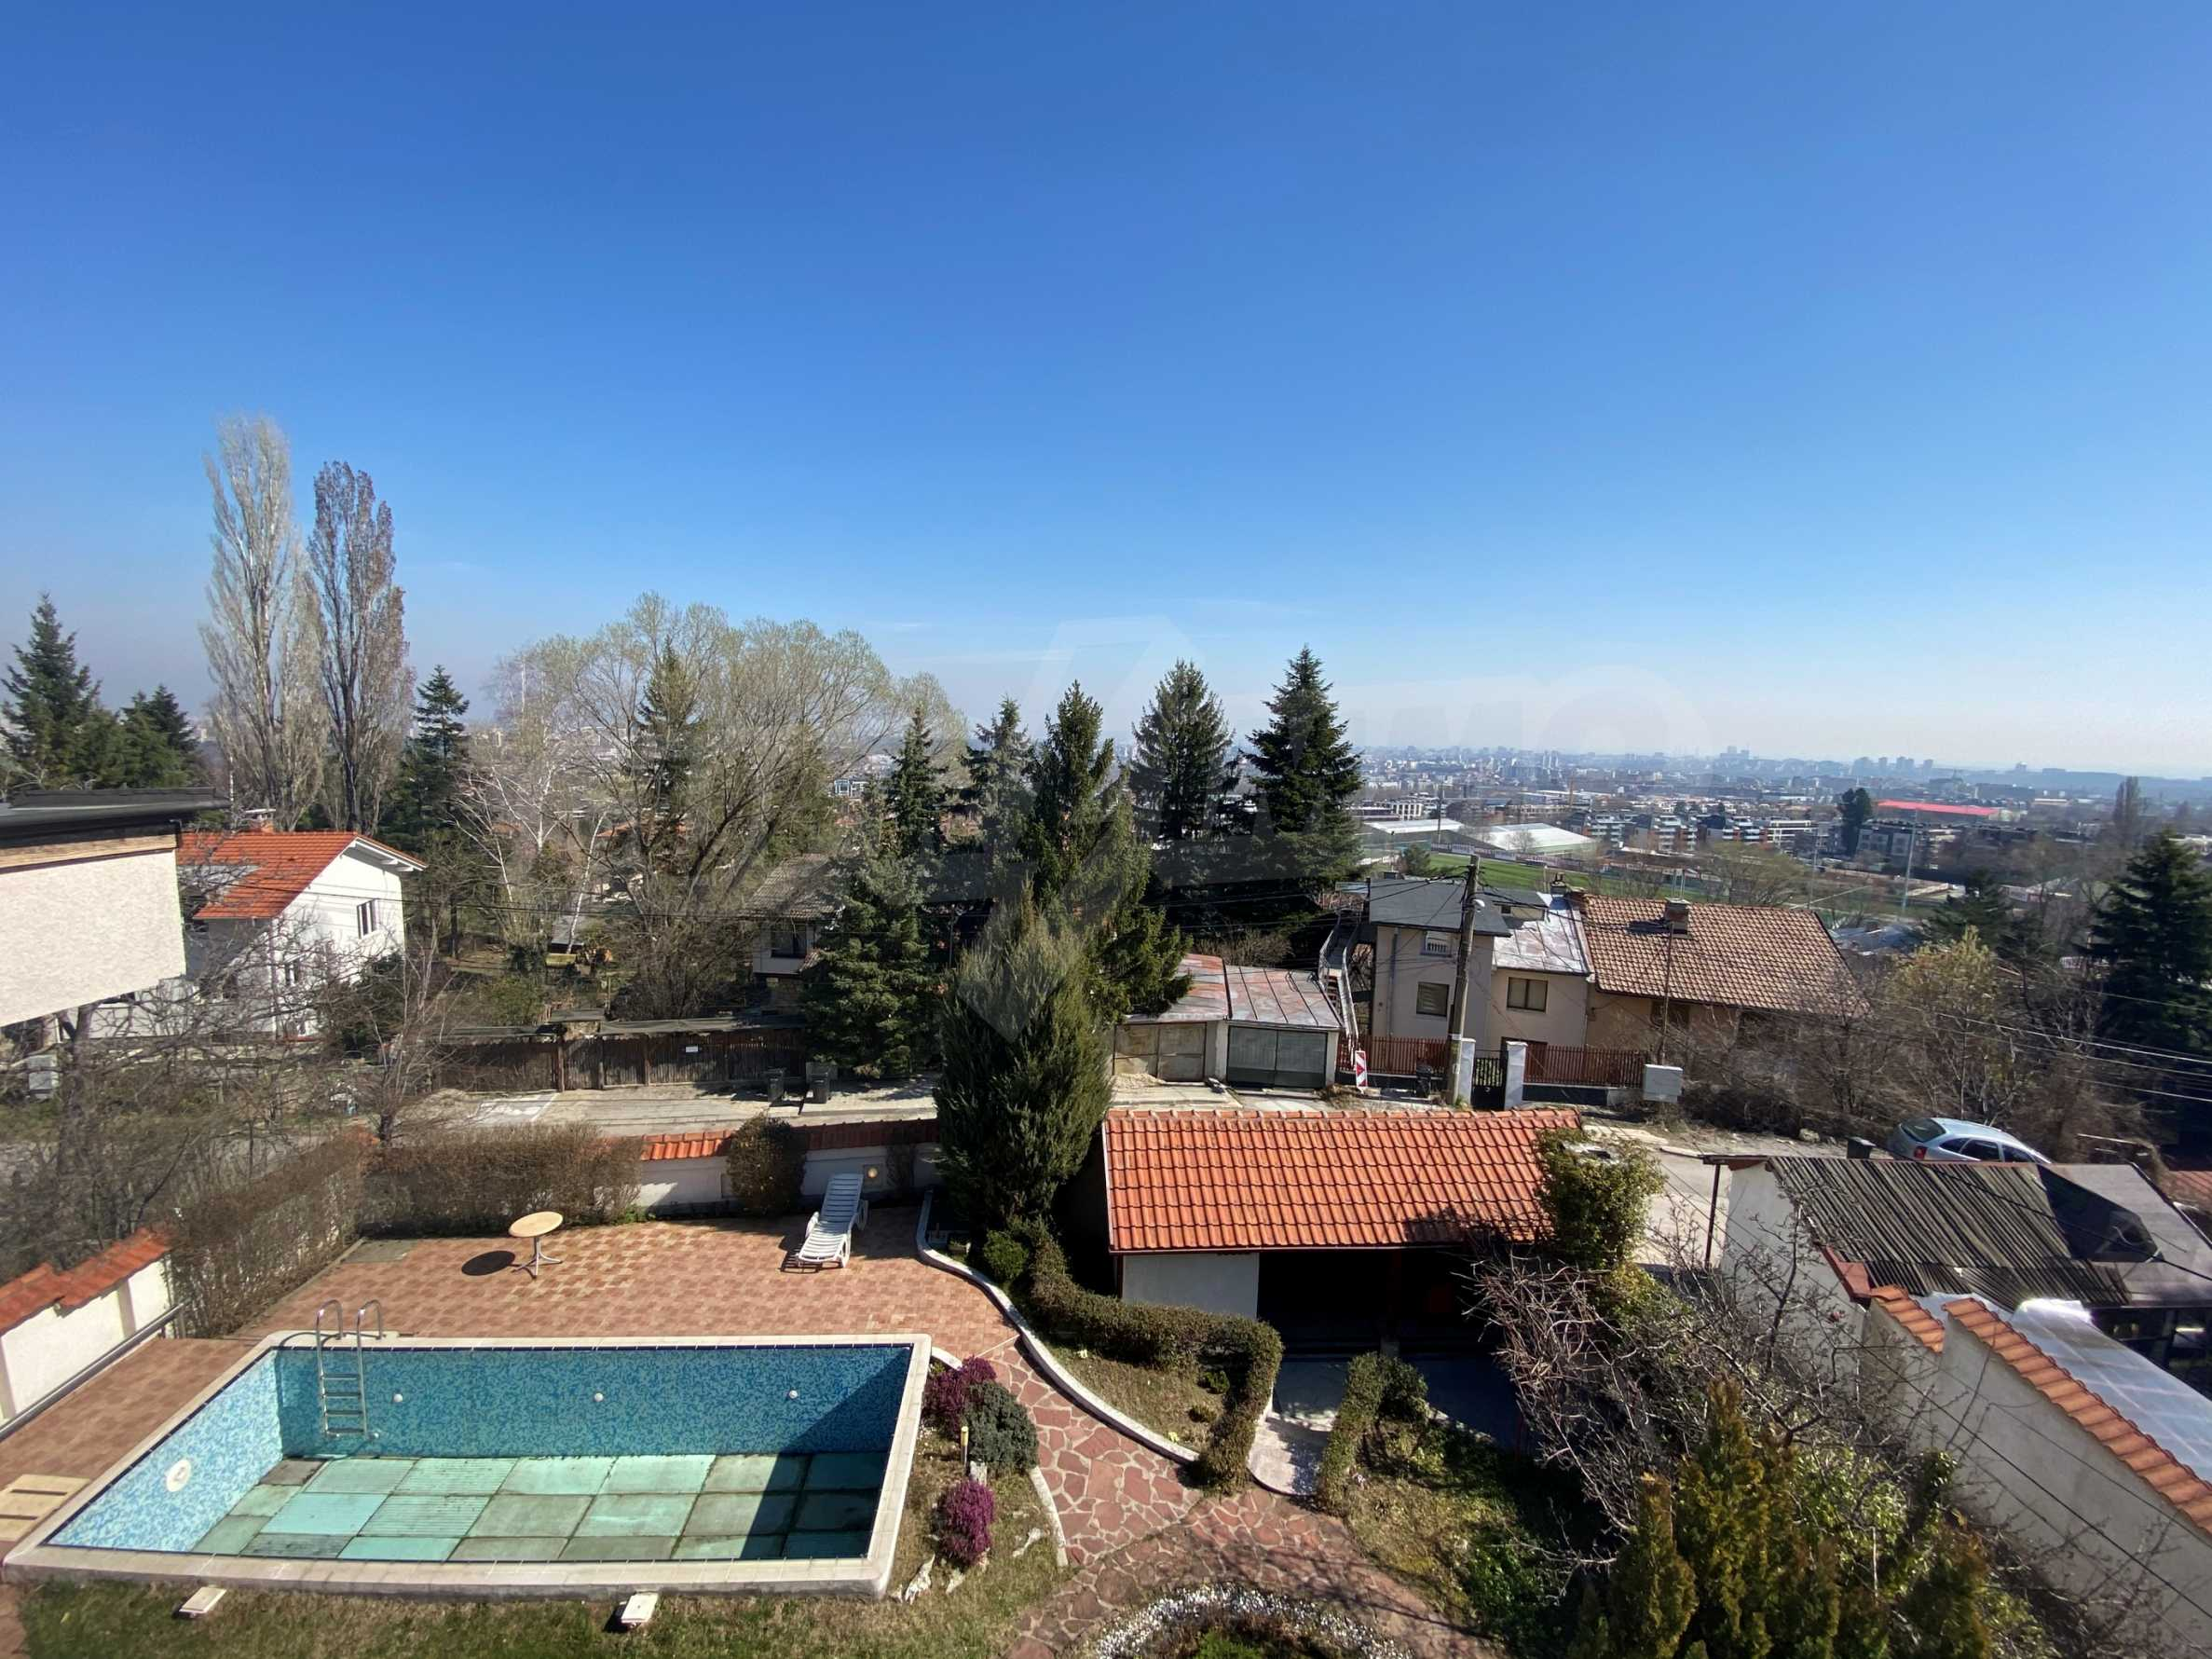 Family house with swimming pool in Dragalevtsi district 20